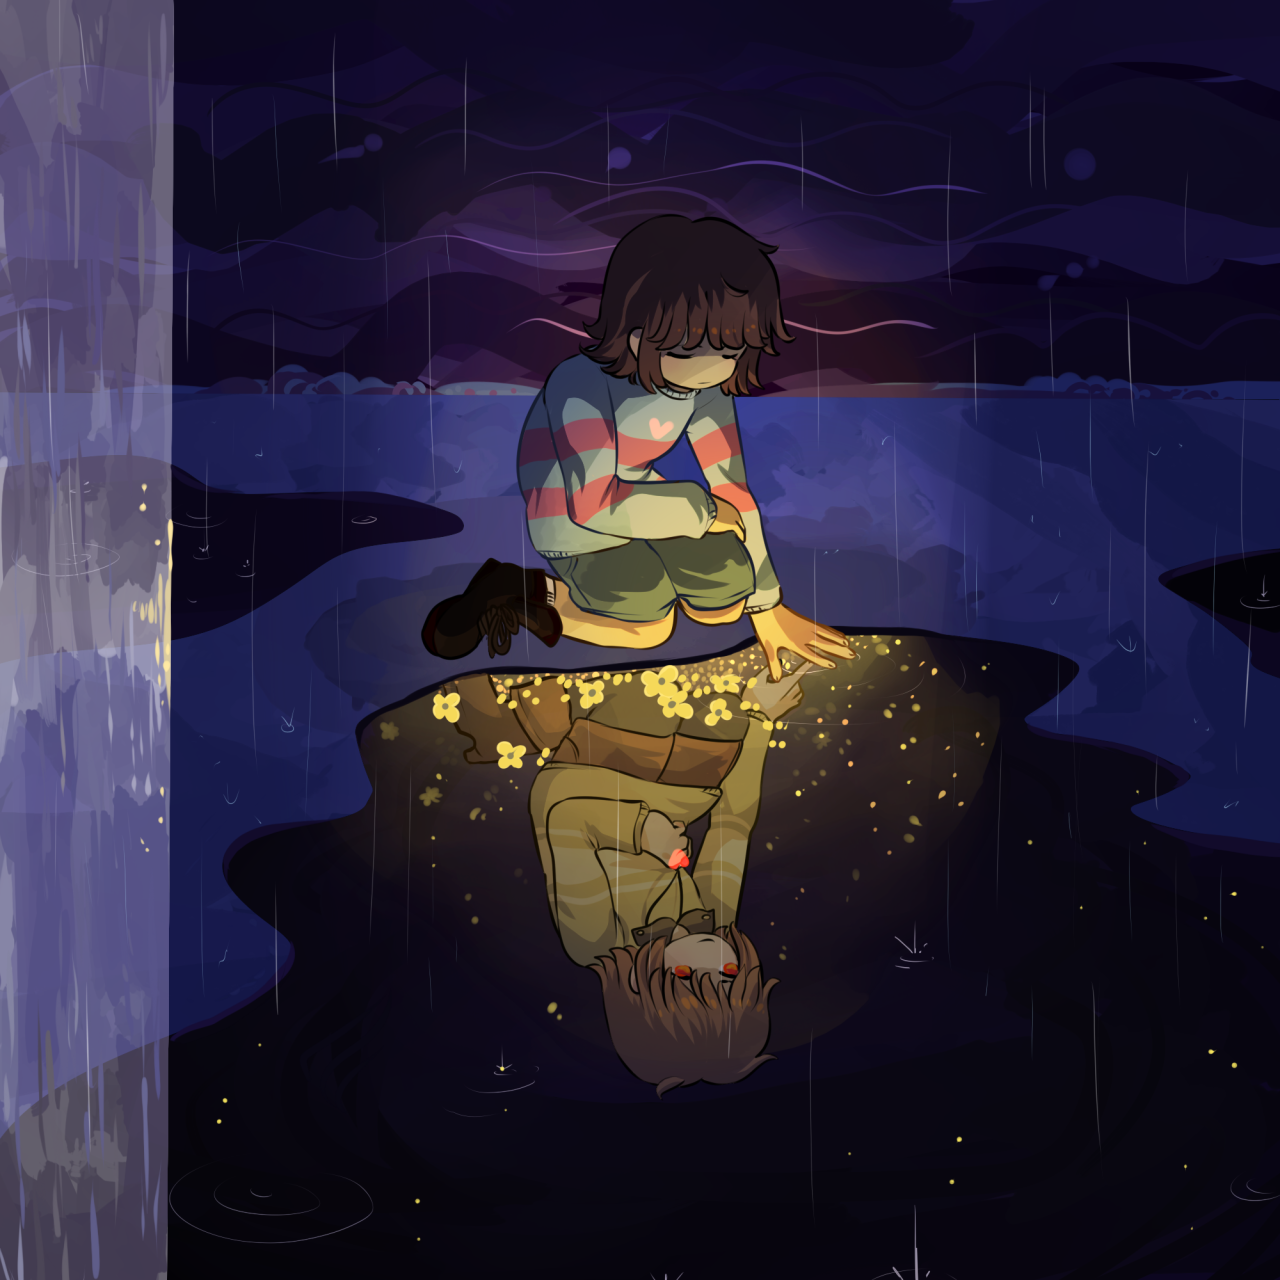 undertale frisk in waterfall - photo #20